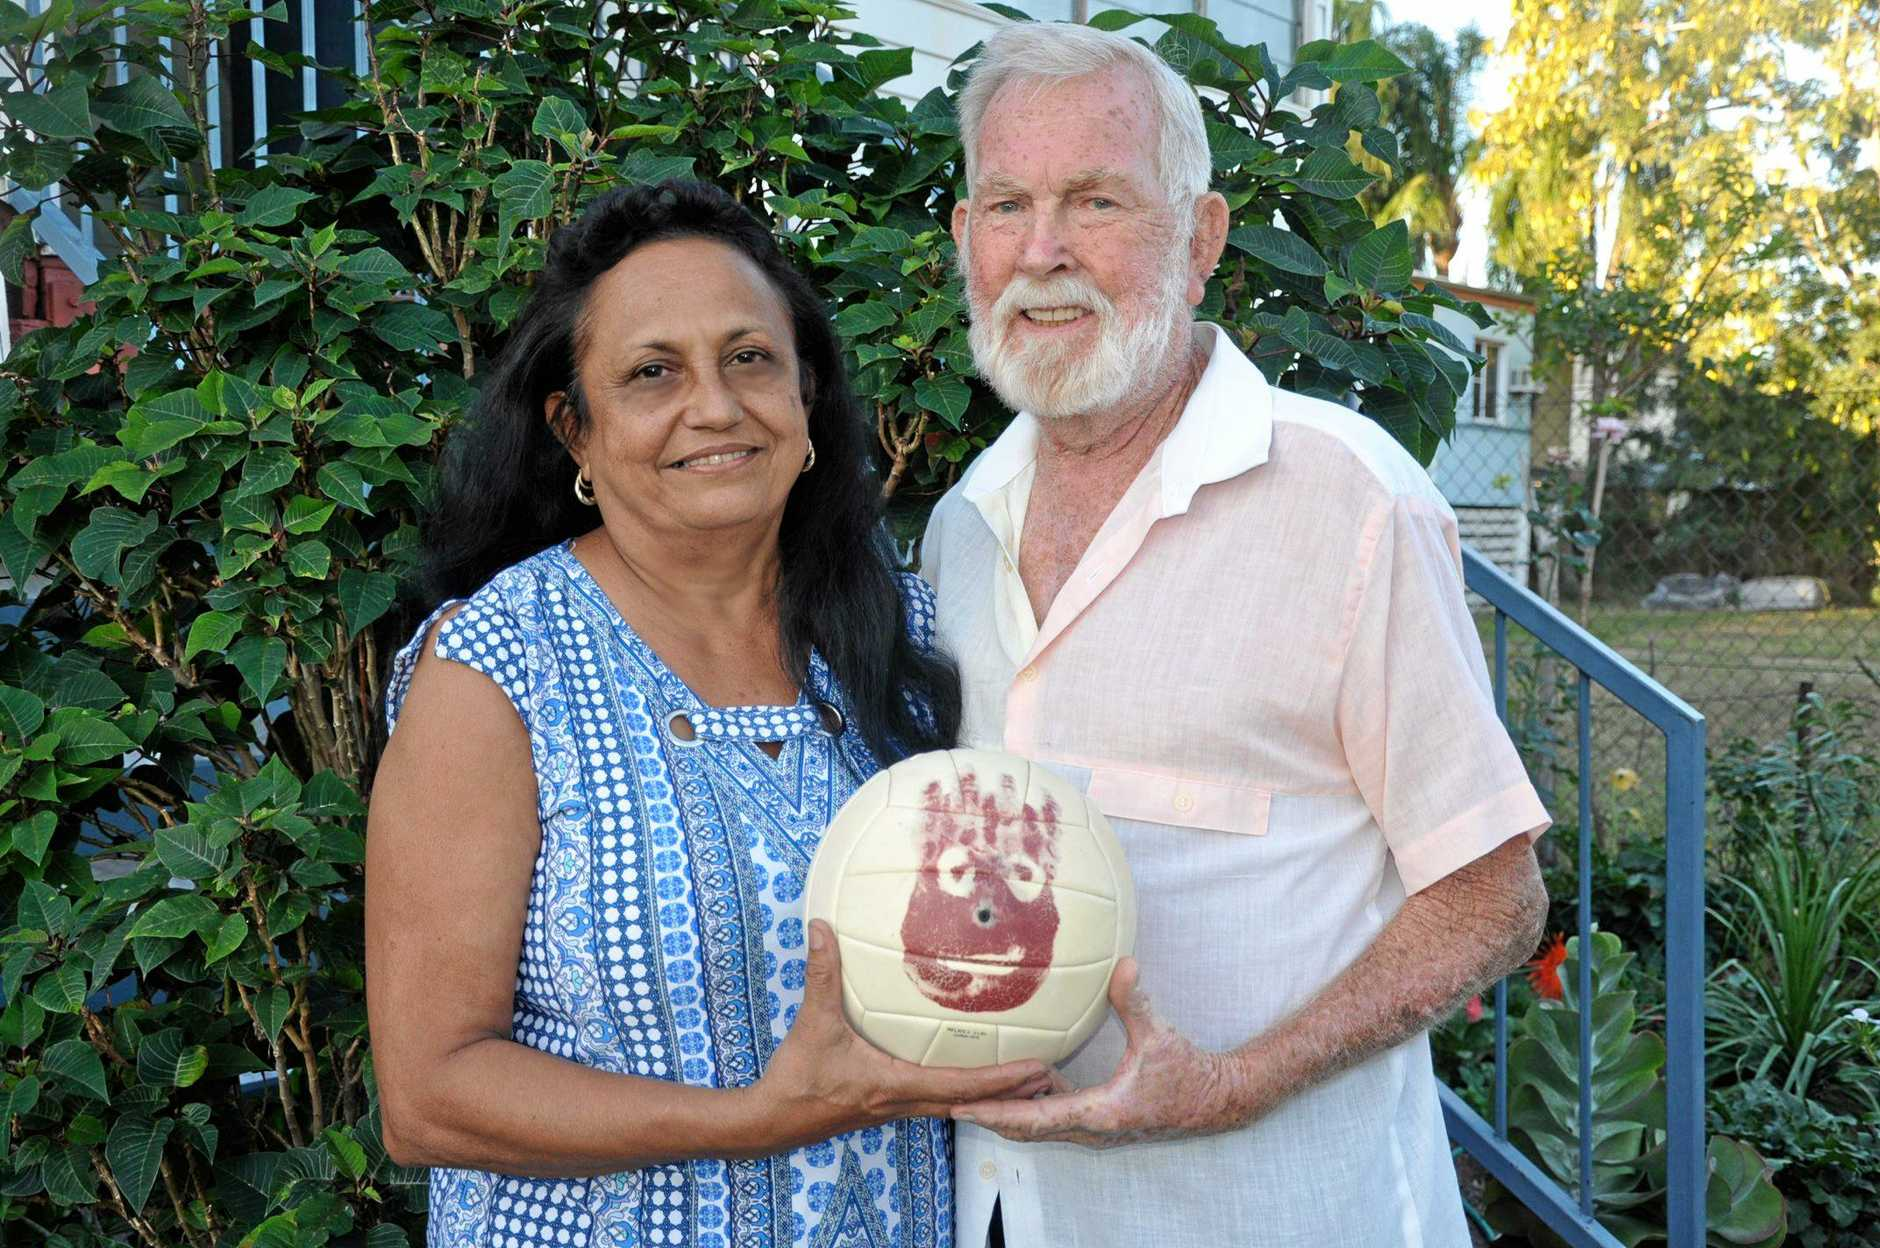 FILM STAR: Susie and Ray Matthews with Tom Hanks silent co-star in Cast Away, Wilson.